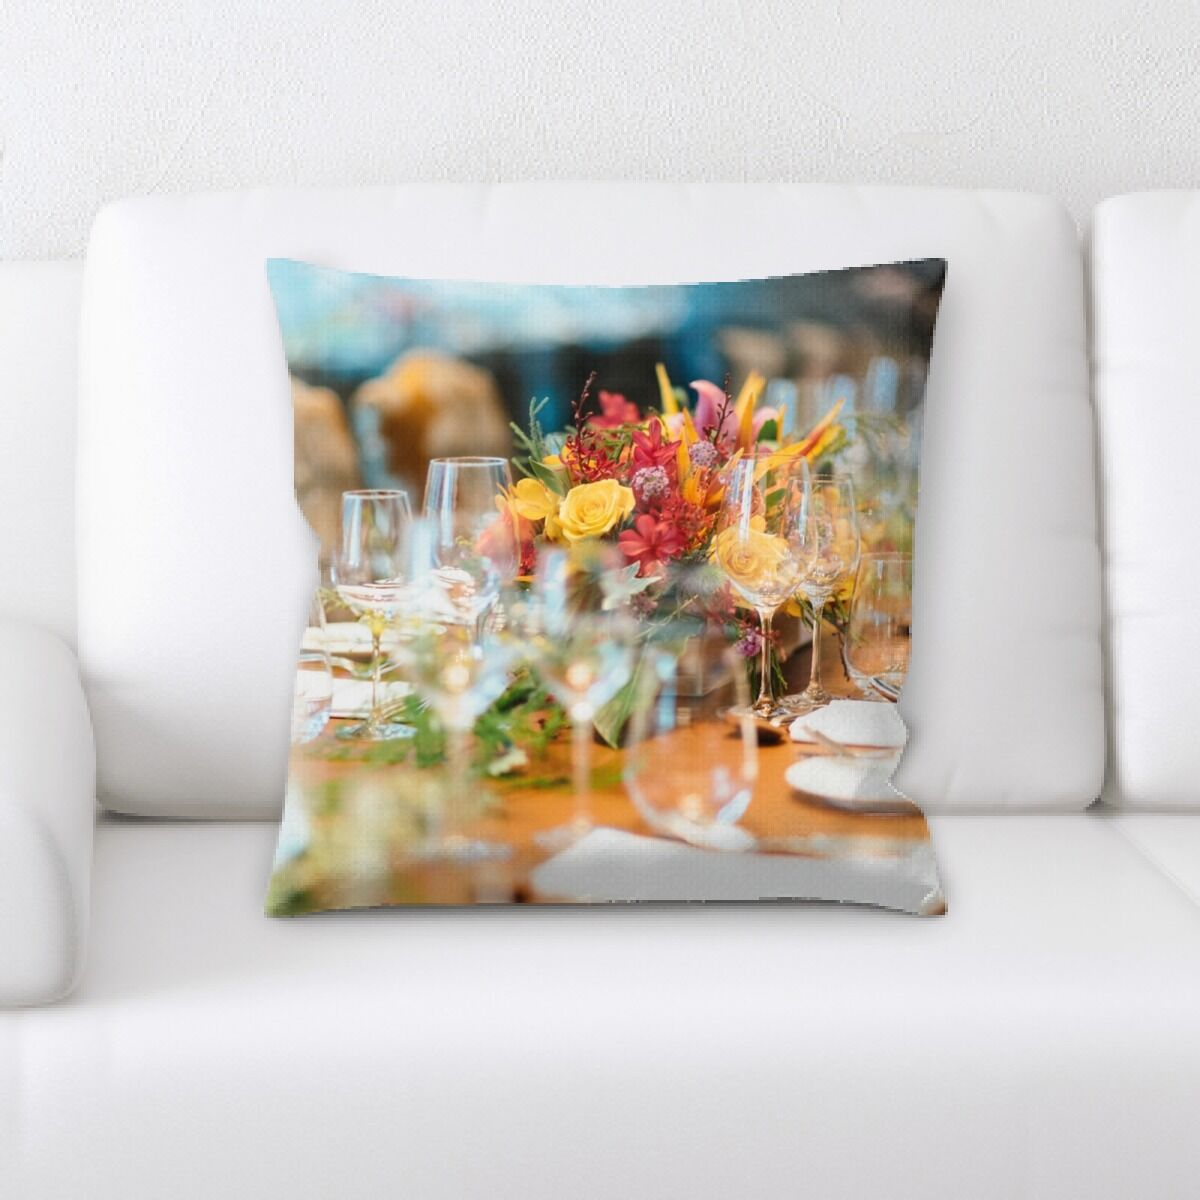 Veans Restaurant & Cafe Life Style (43) Throw Pillow